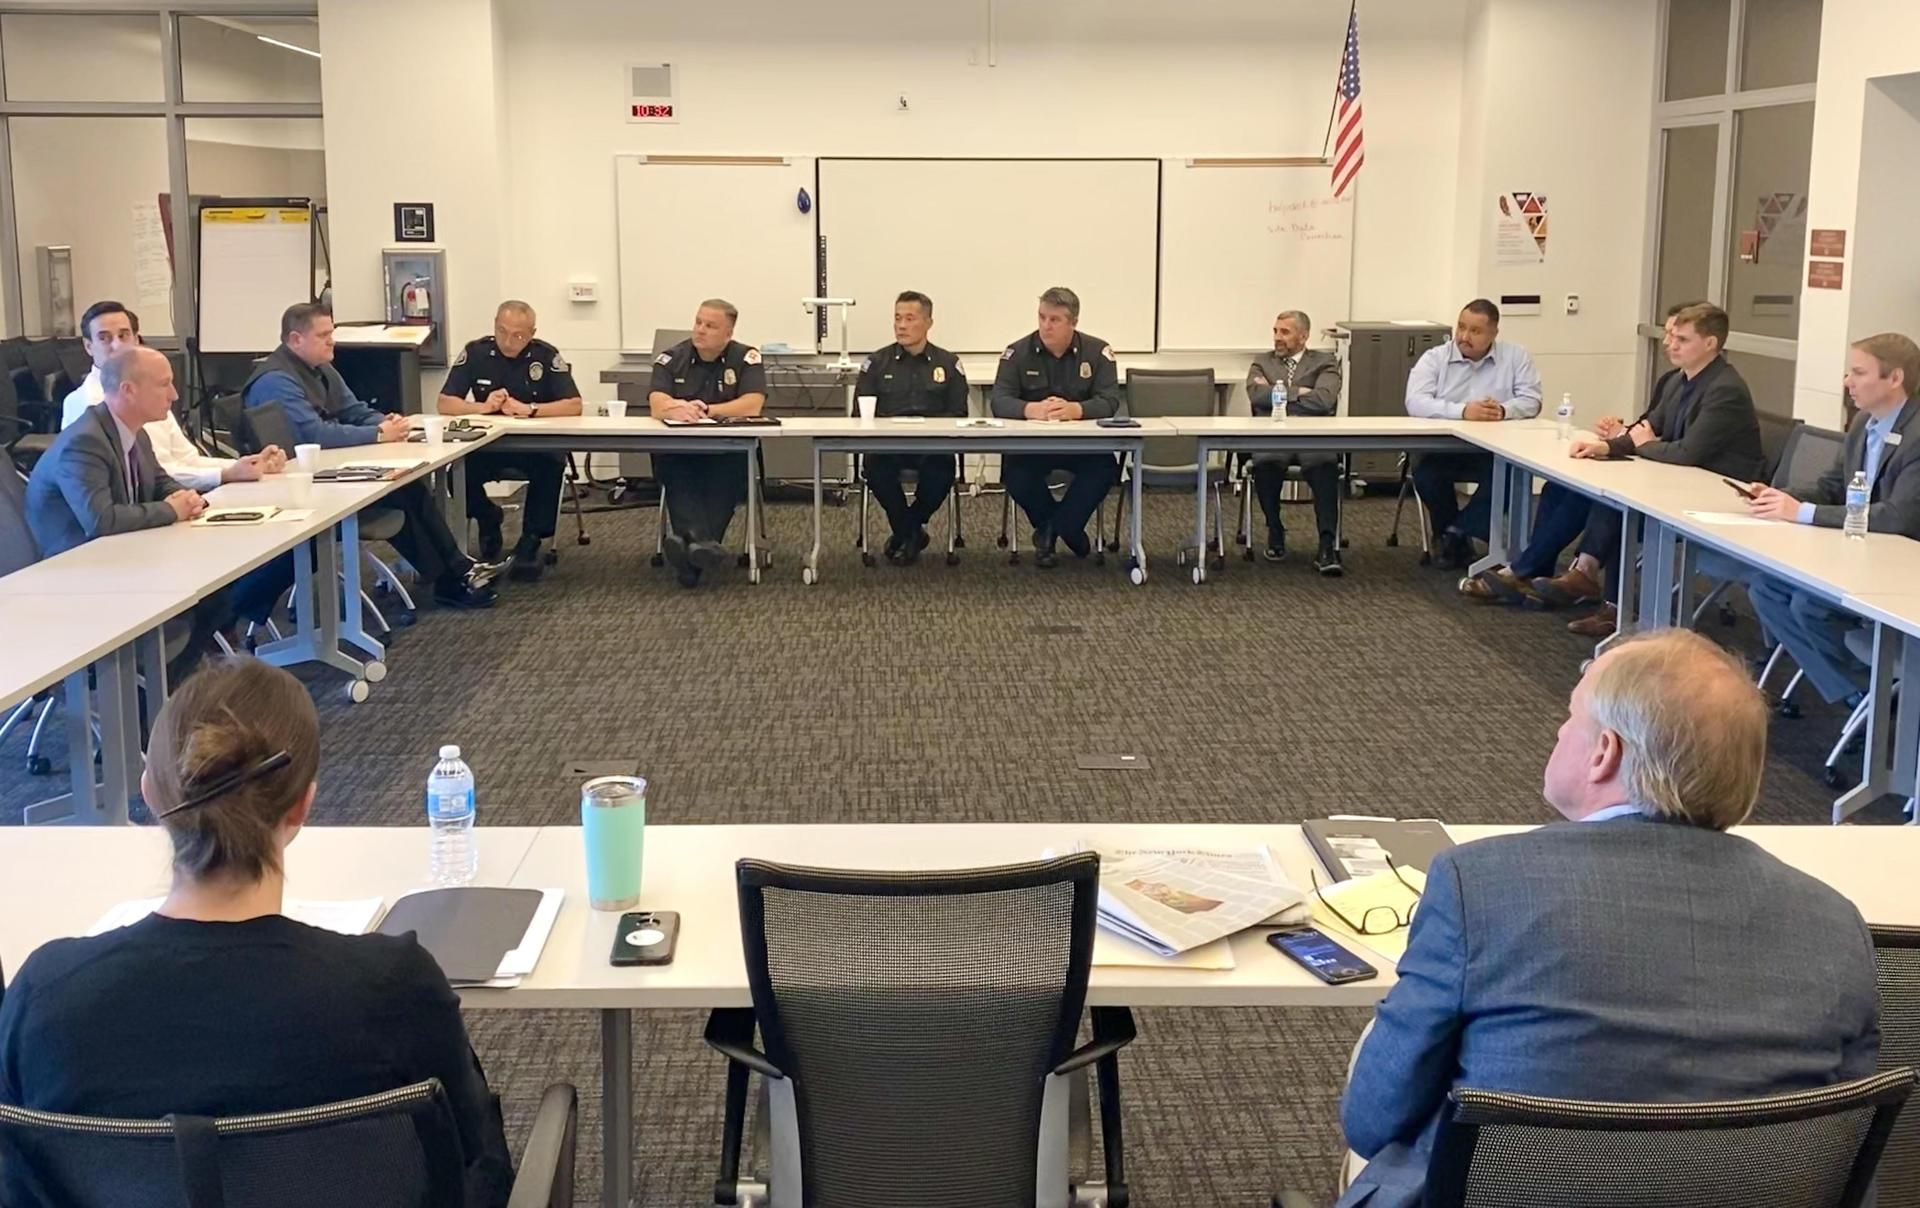 Meeting with AUSD and City Officials